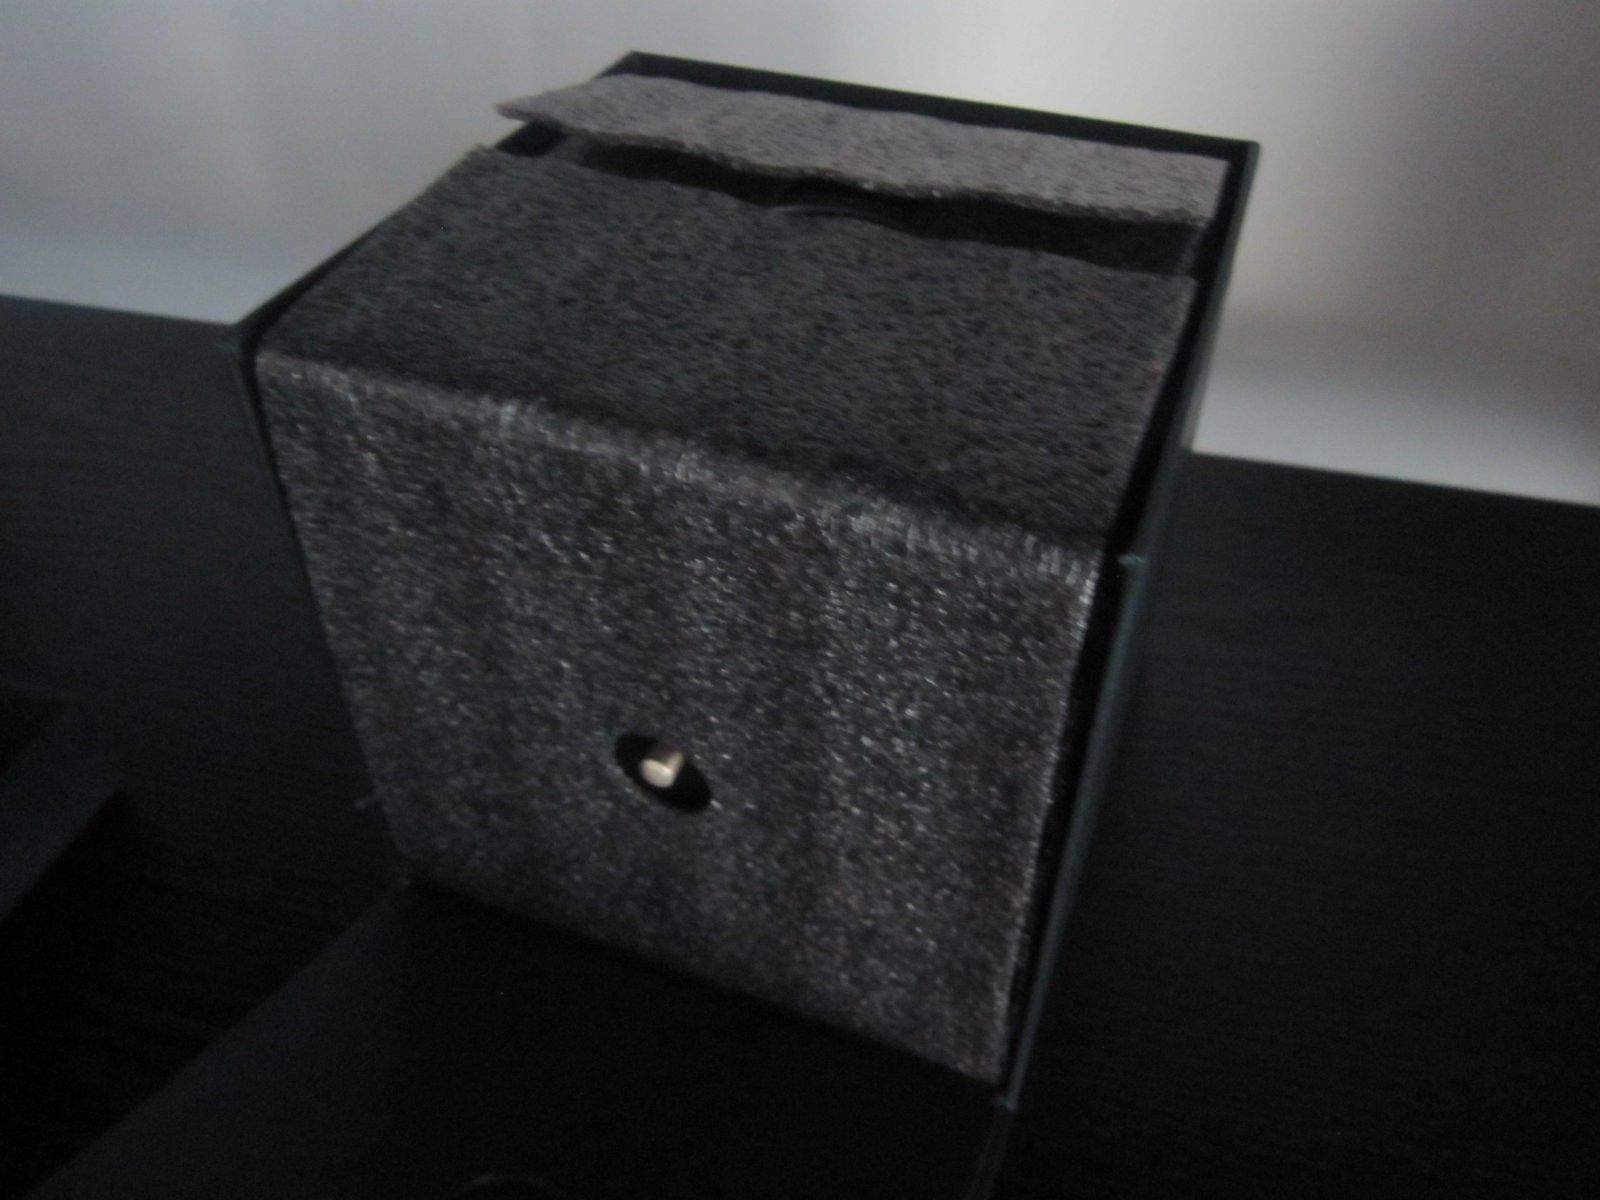 MM deluxe wooden box (with the watch instruments coin on top) - IMG_5474.JPG